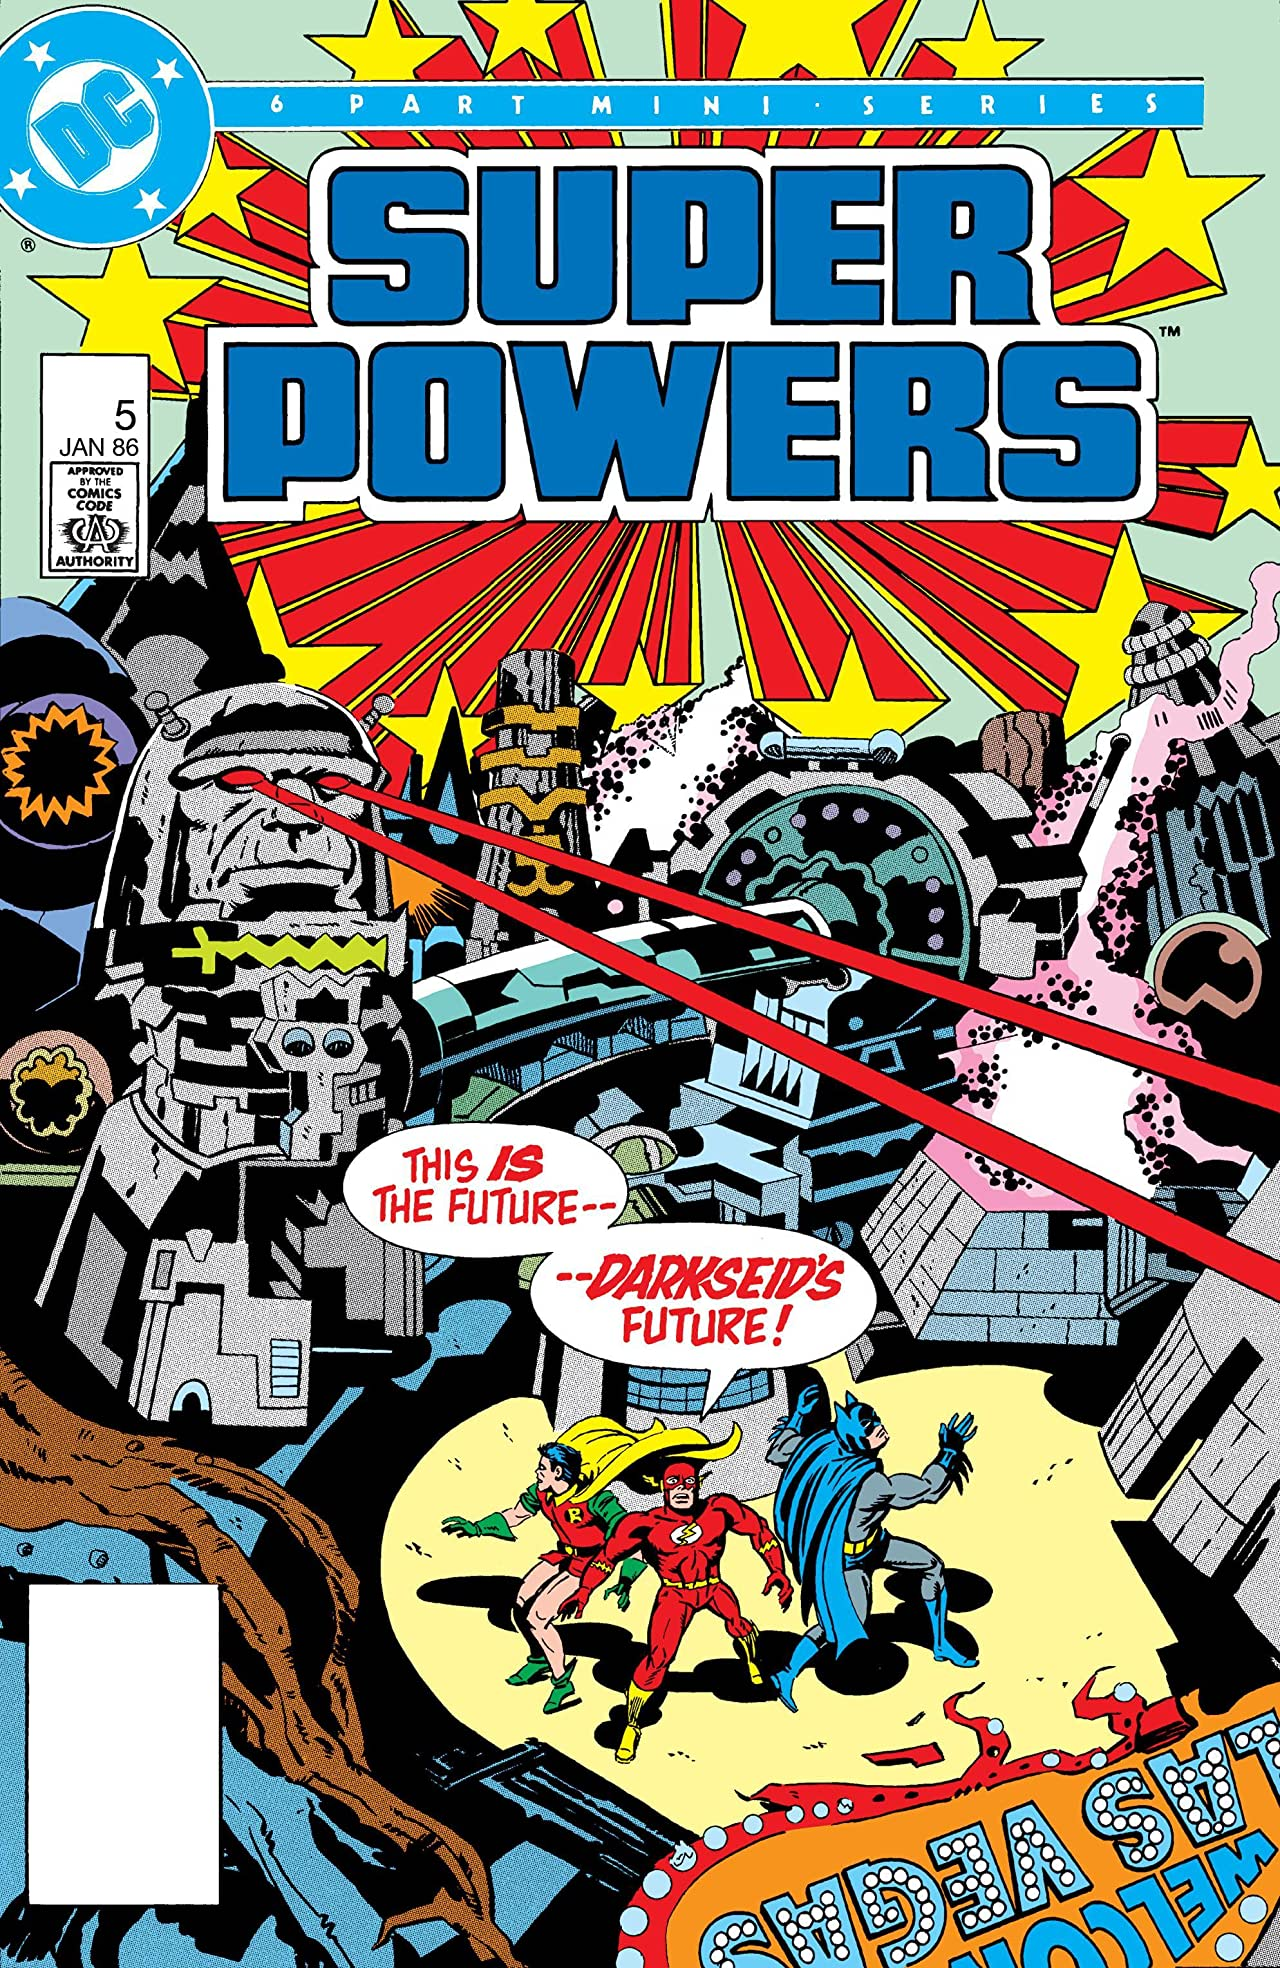 Super Powers (1985) #5